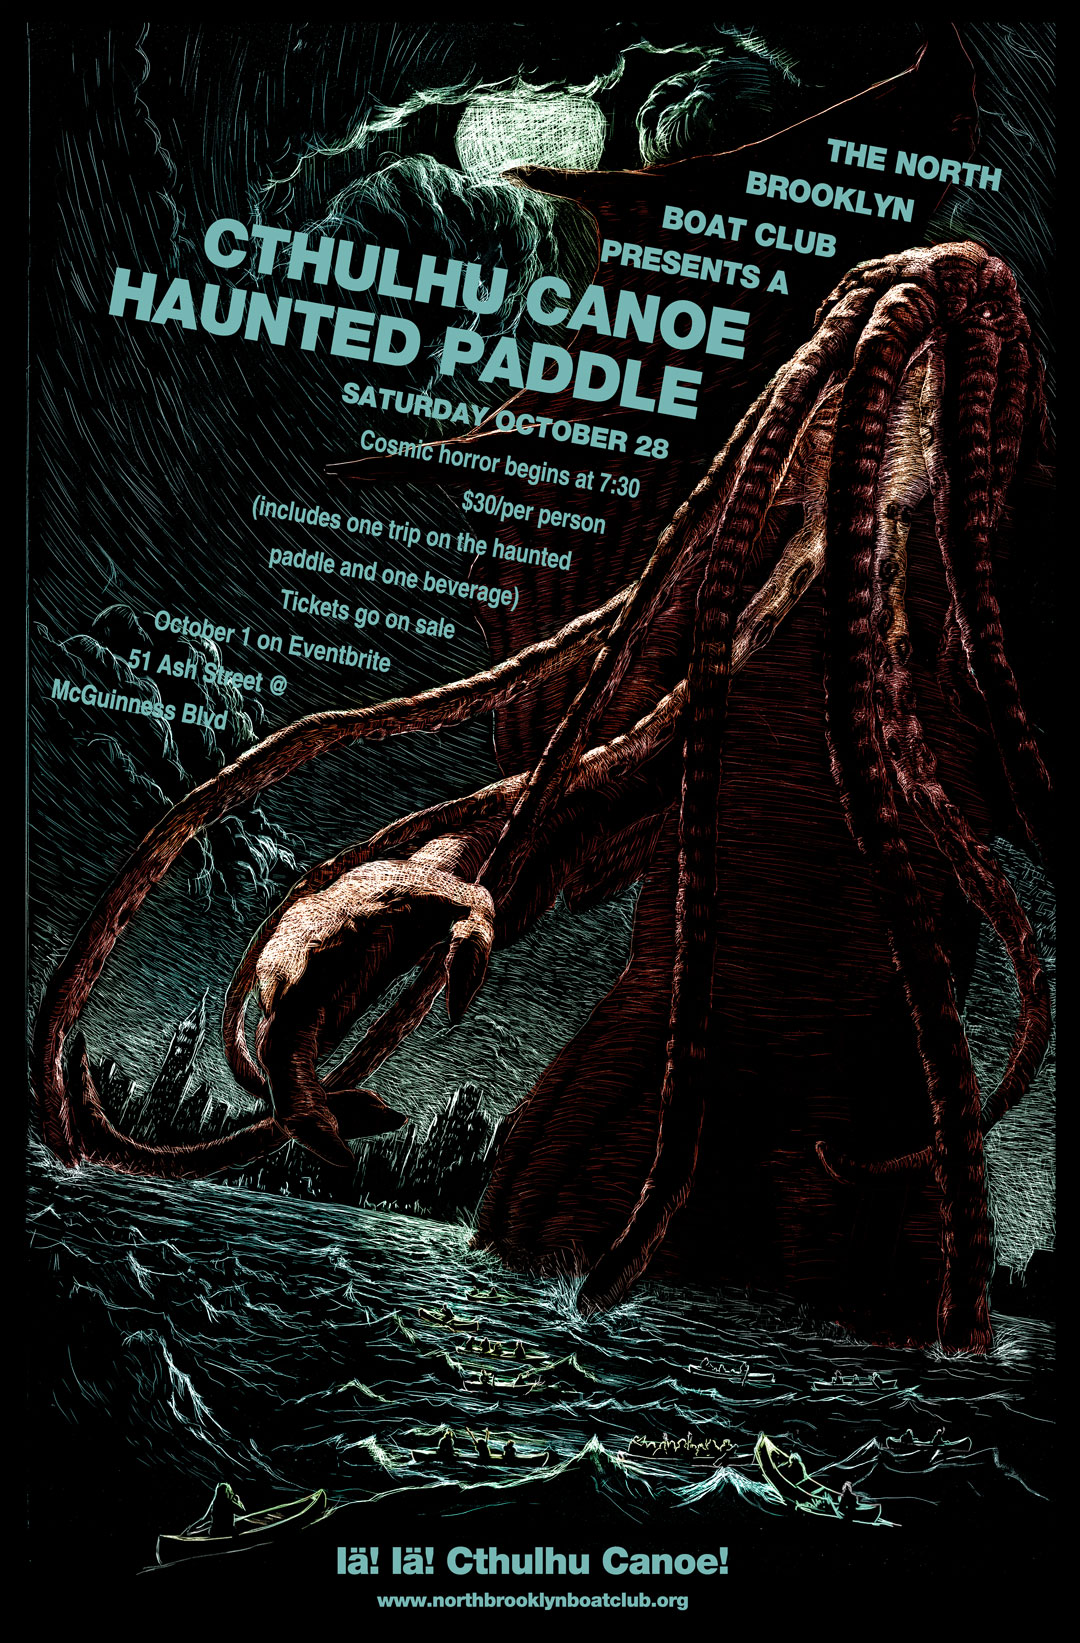 North Brooklyn Boat Club Haunted Paddle 2017: Cthulhu Canoe! October 28, 2017, $30, 7:00-11:00 PM, 51 Ash St., Brooklyn, NY